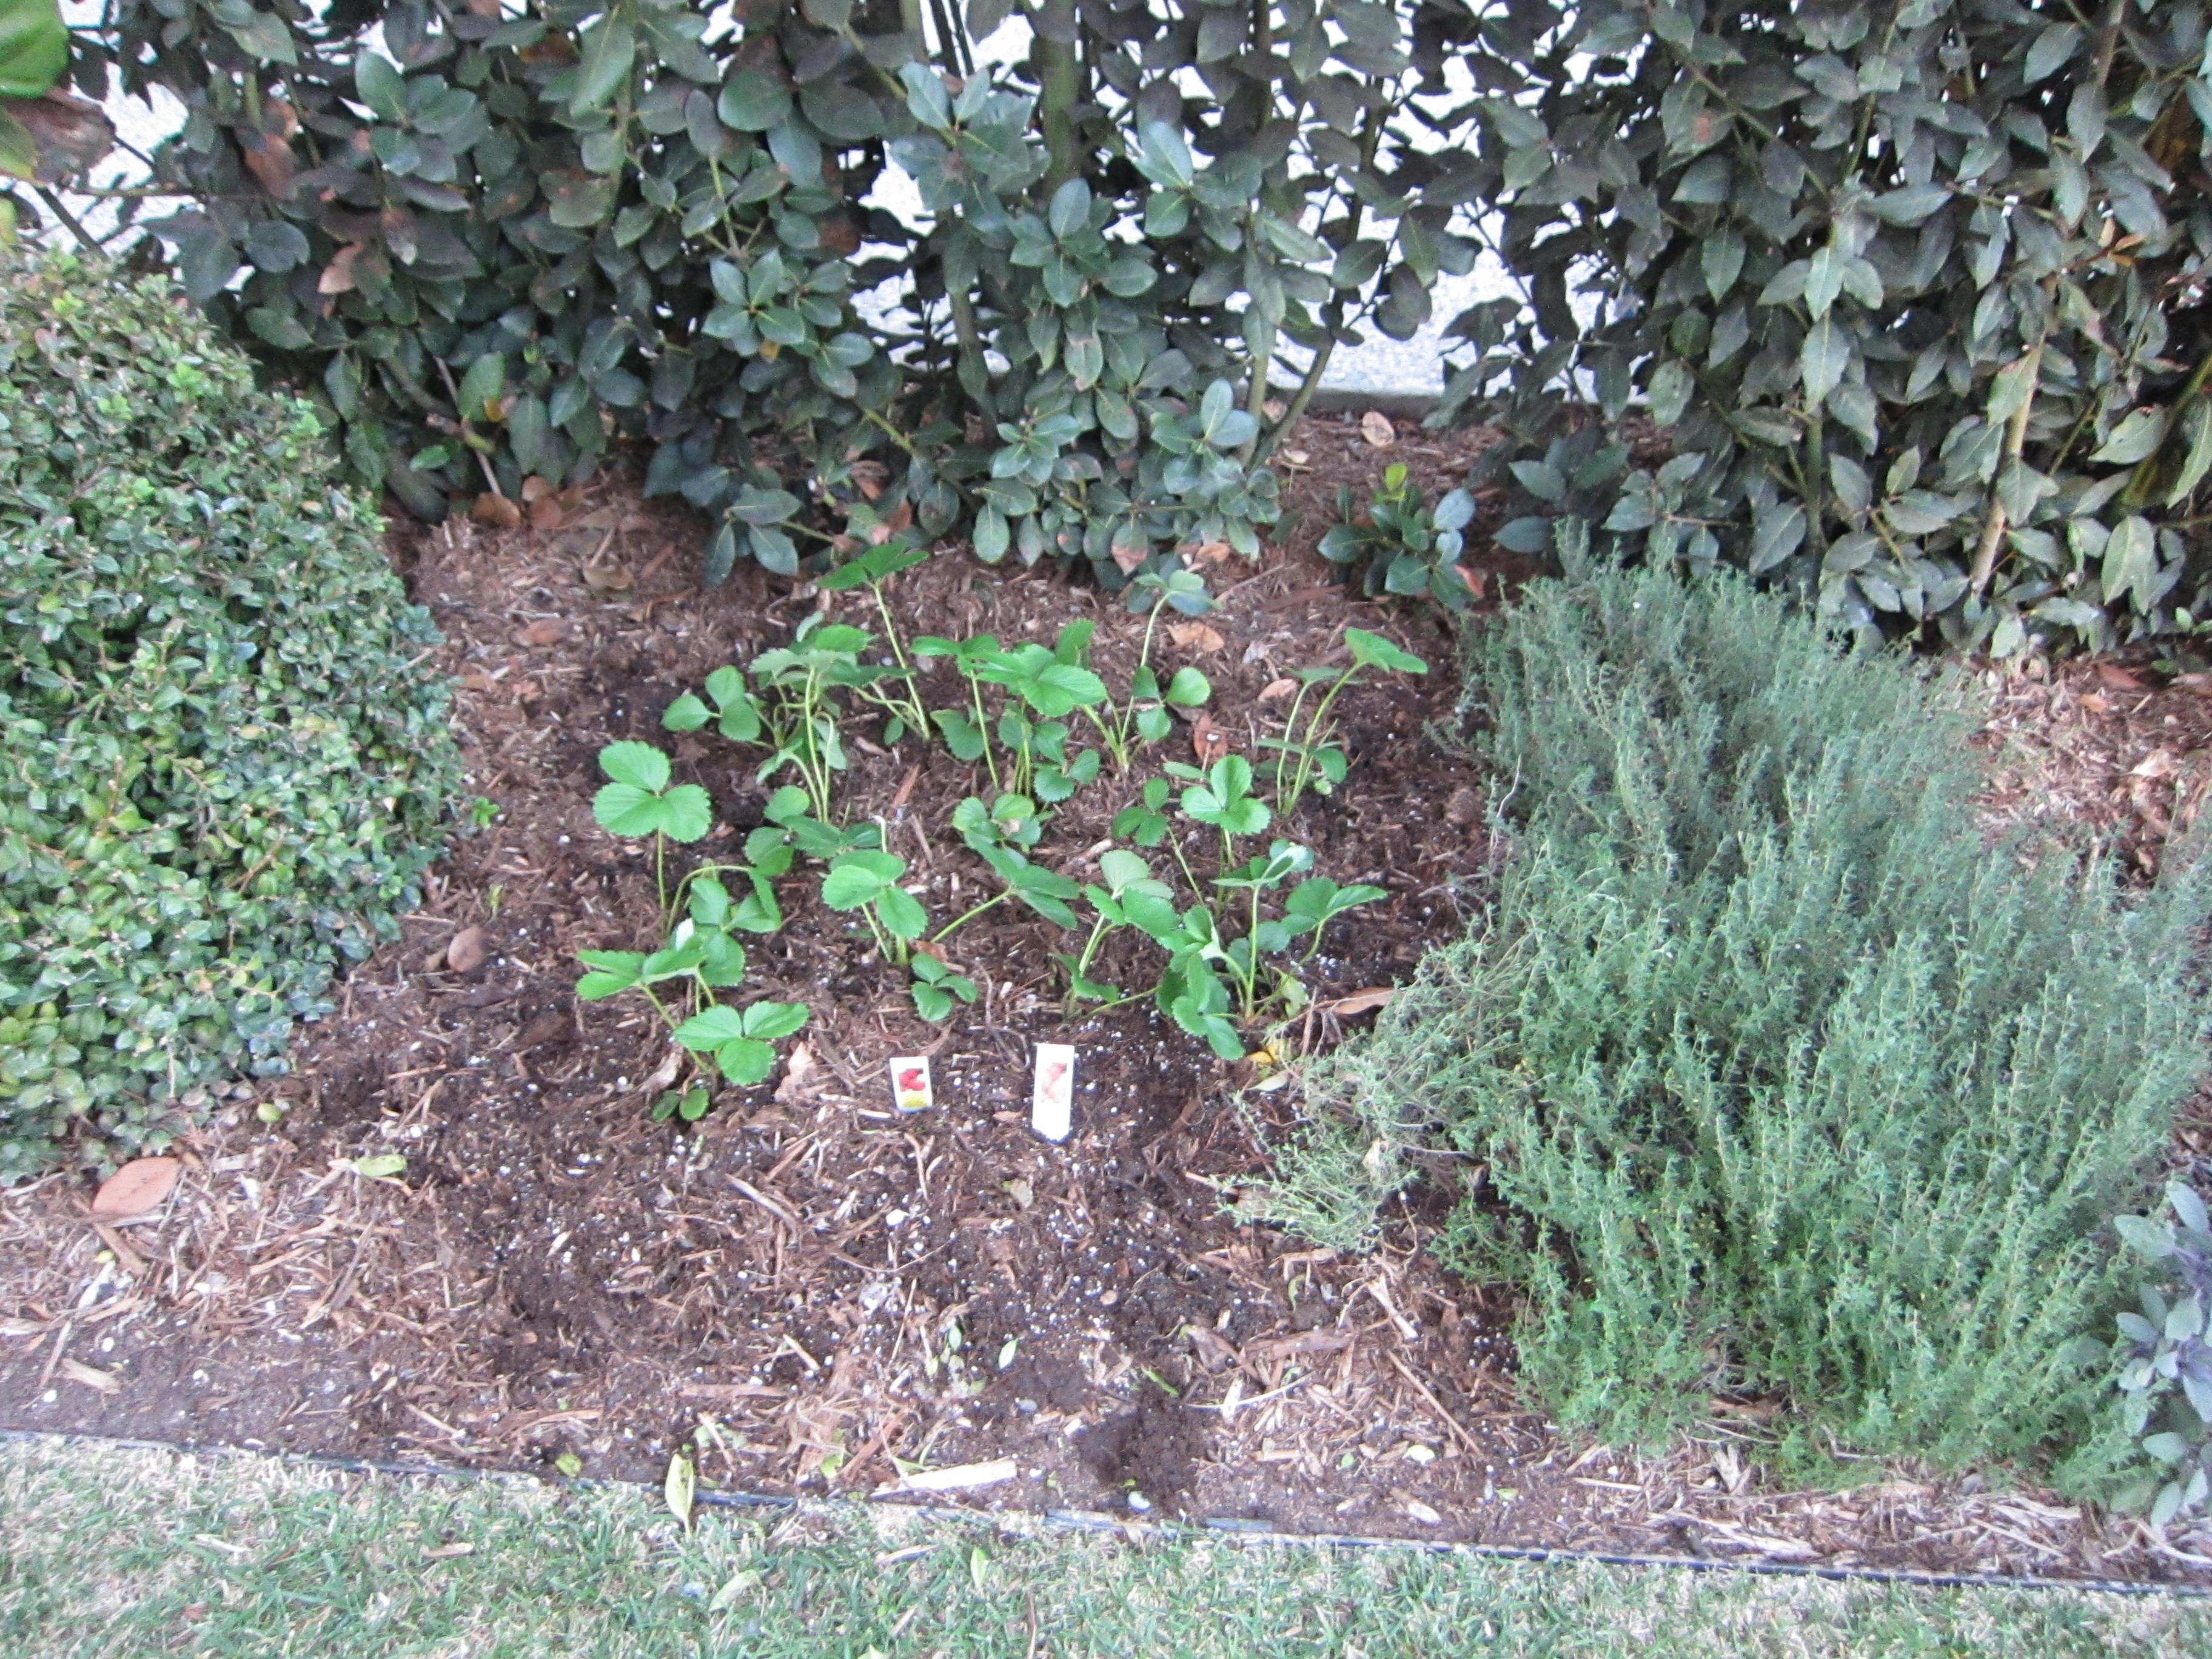 Strawberries were added to an in-ground planter bed in a corner away from trampling feet.